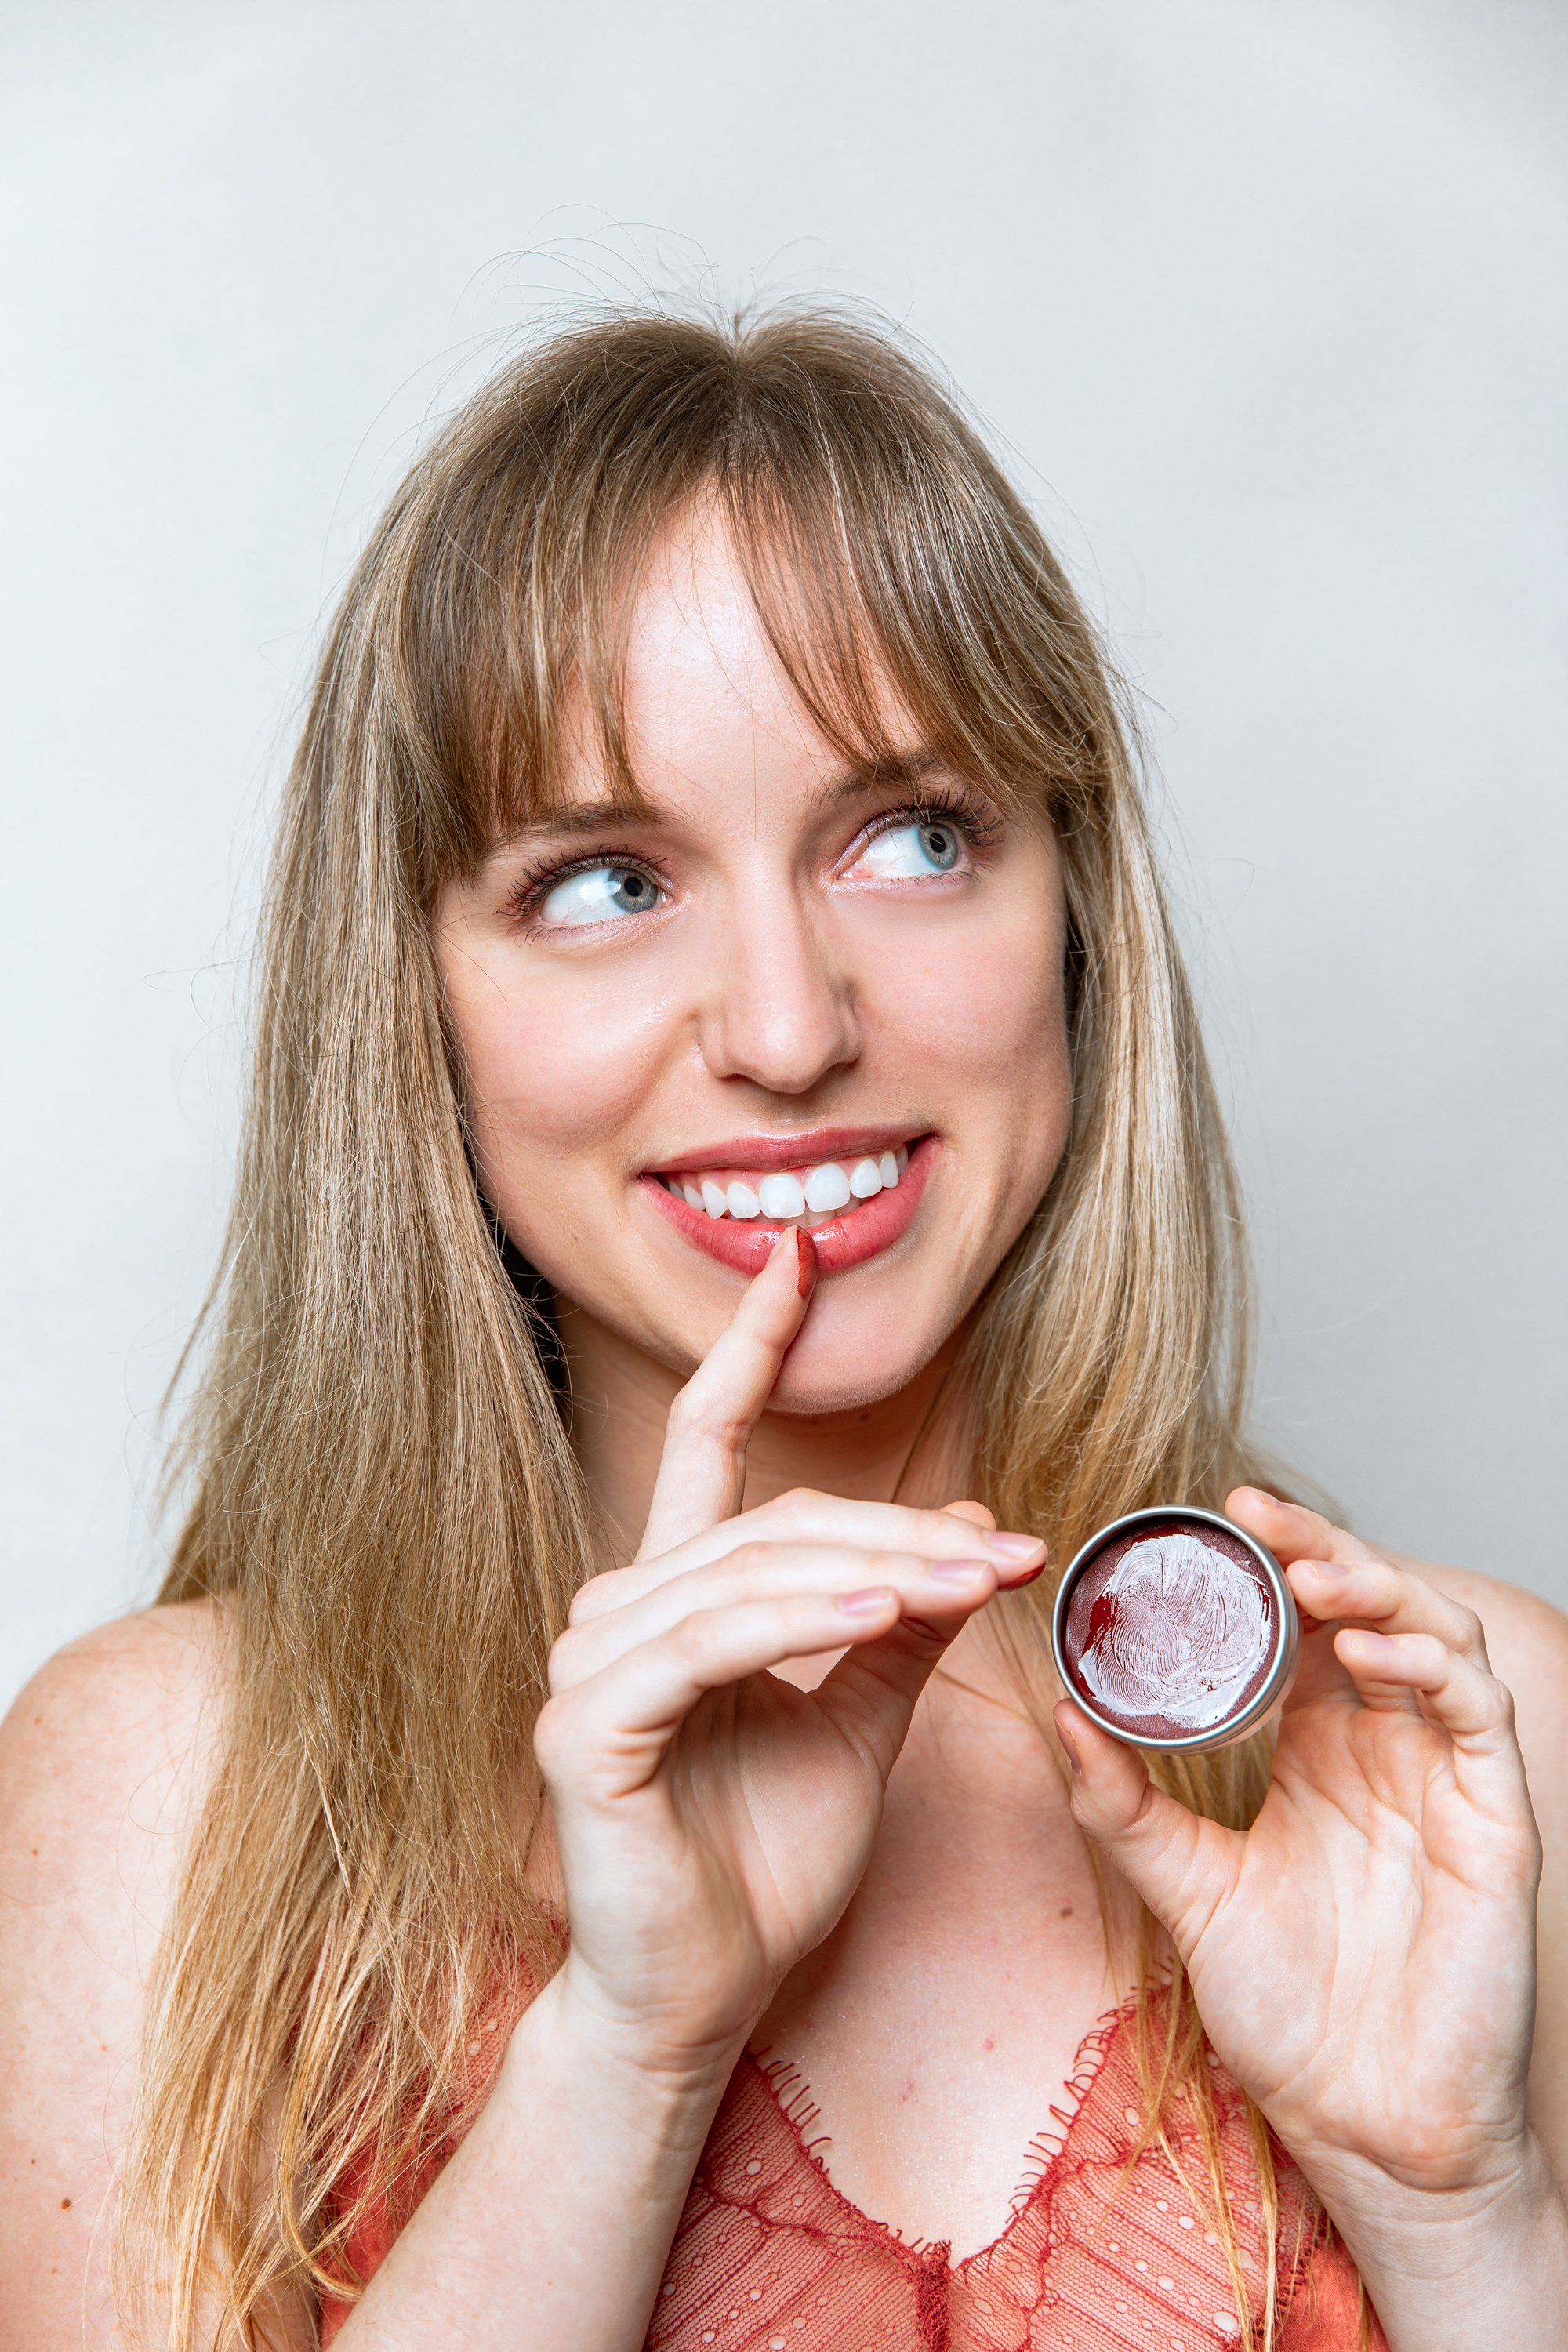 A woman smiling looking away while putting her finger with lip balm on her lip.